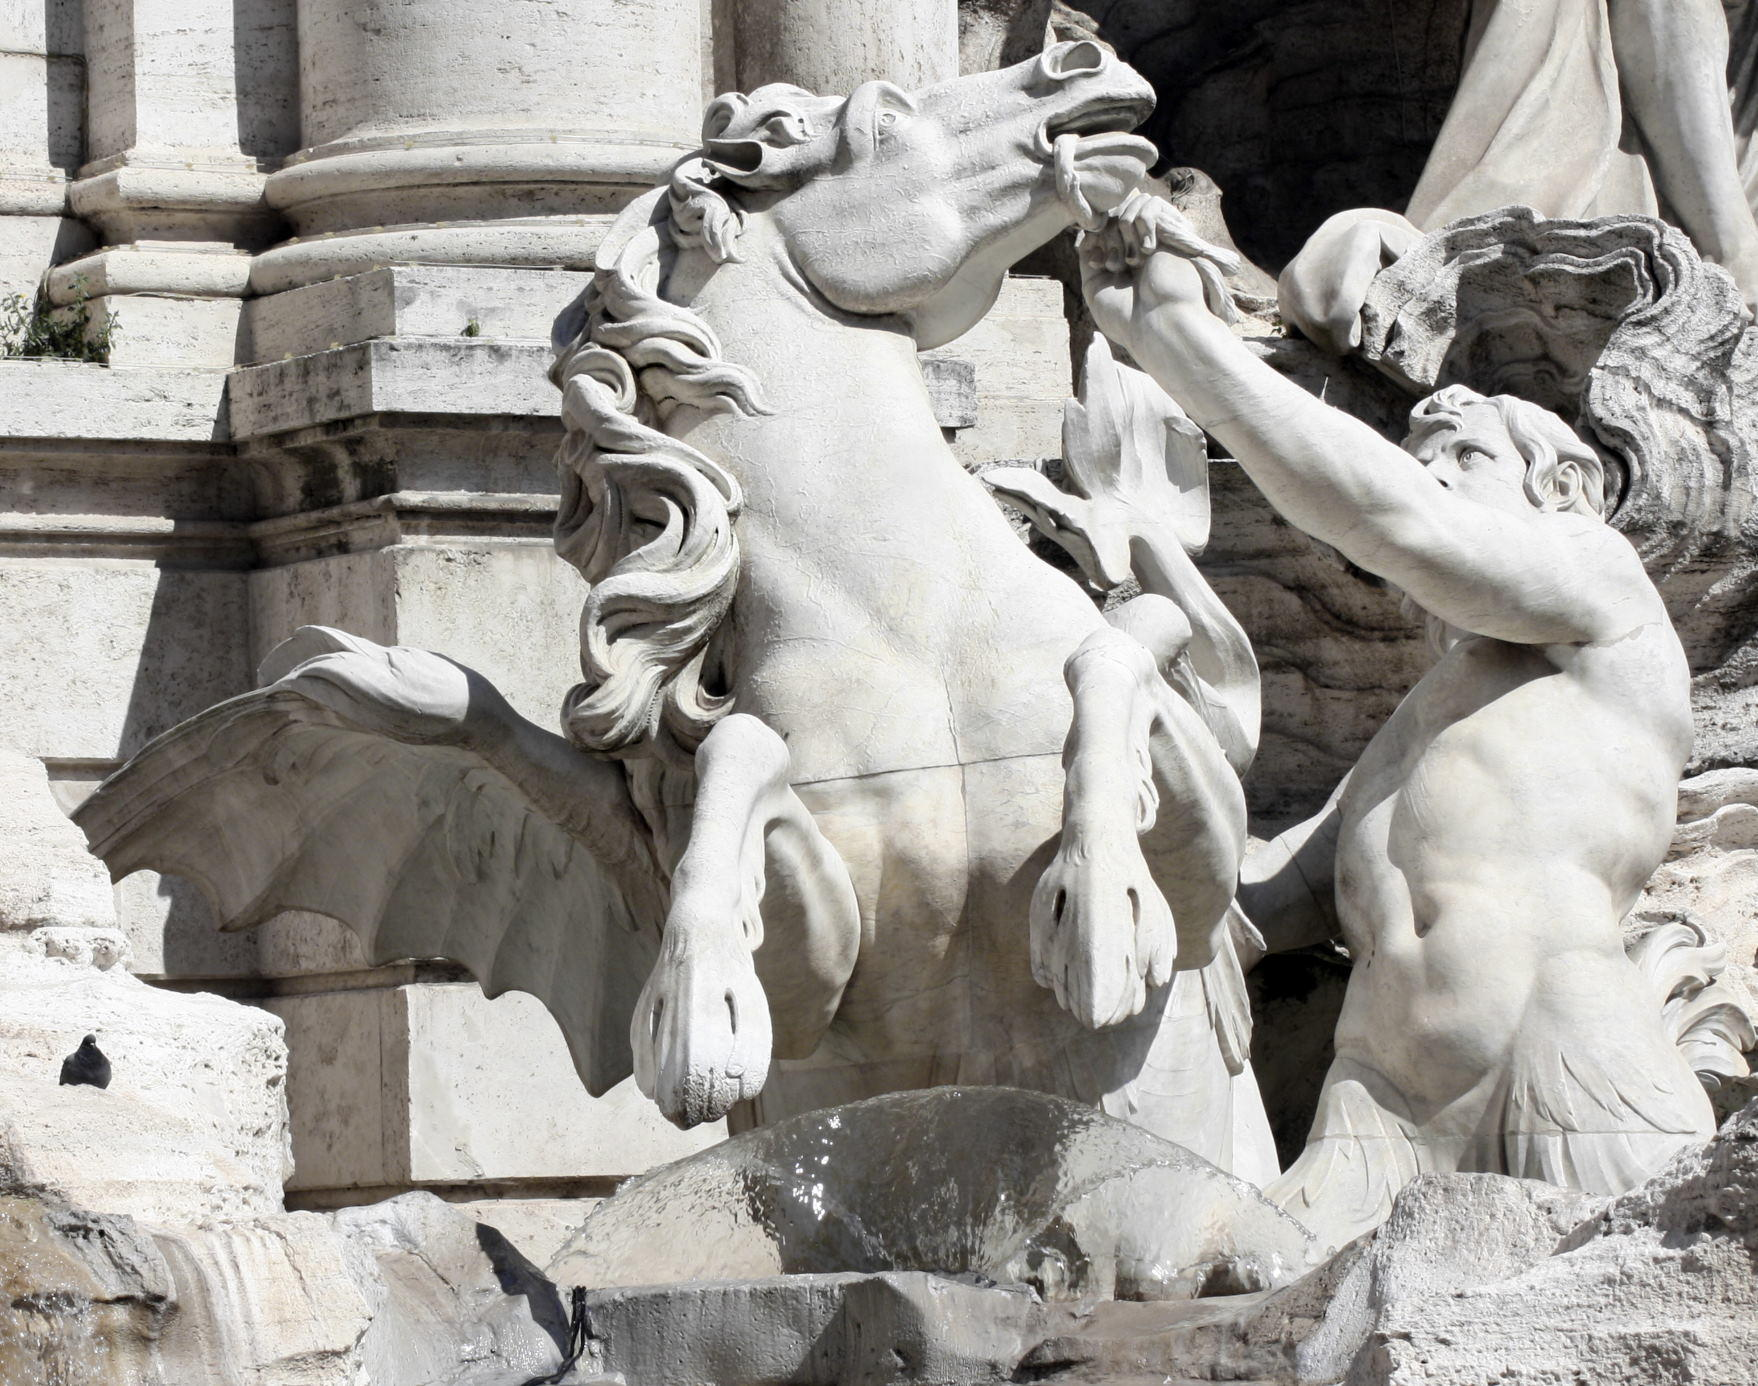 Rearing horse being led by a triton (Pietro Bracci 1700-1773)-Trevi Fountain, Rome, Italy